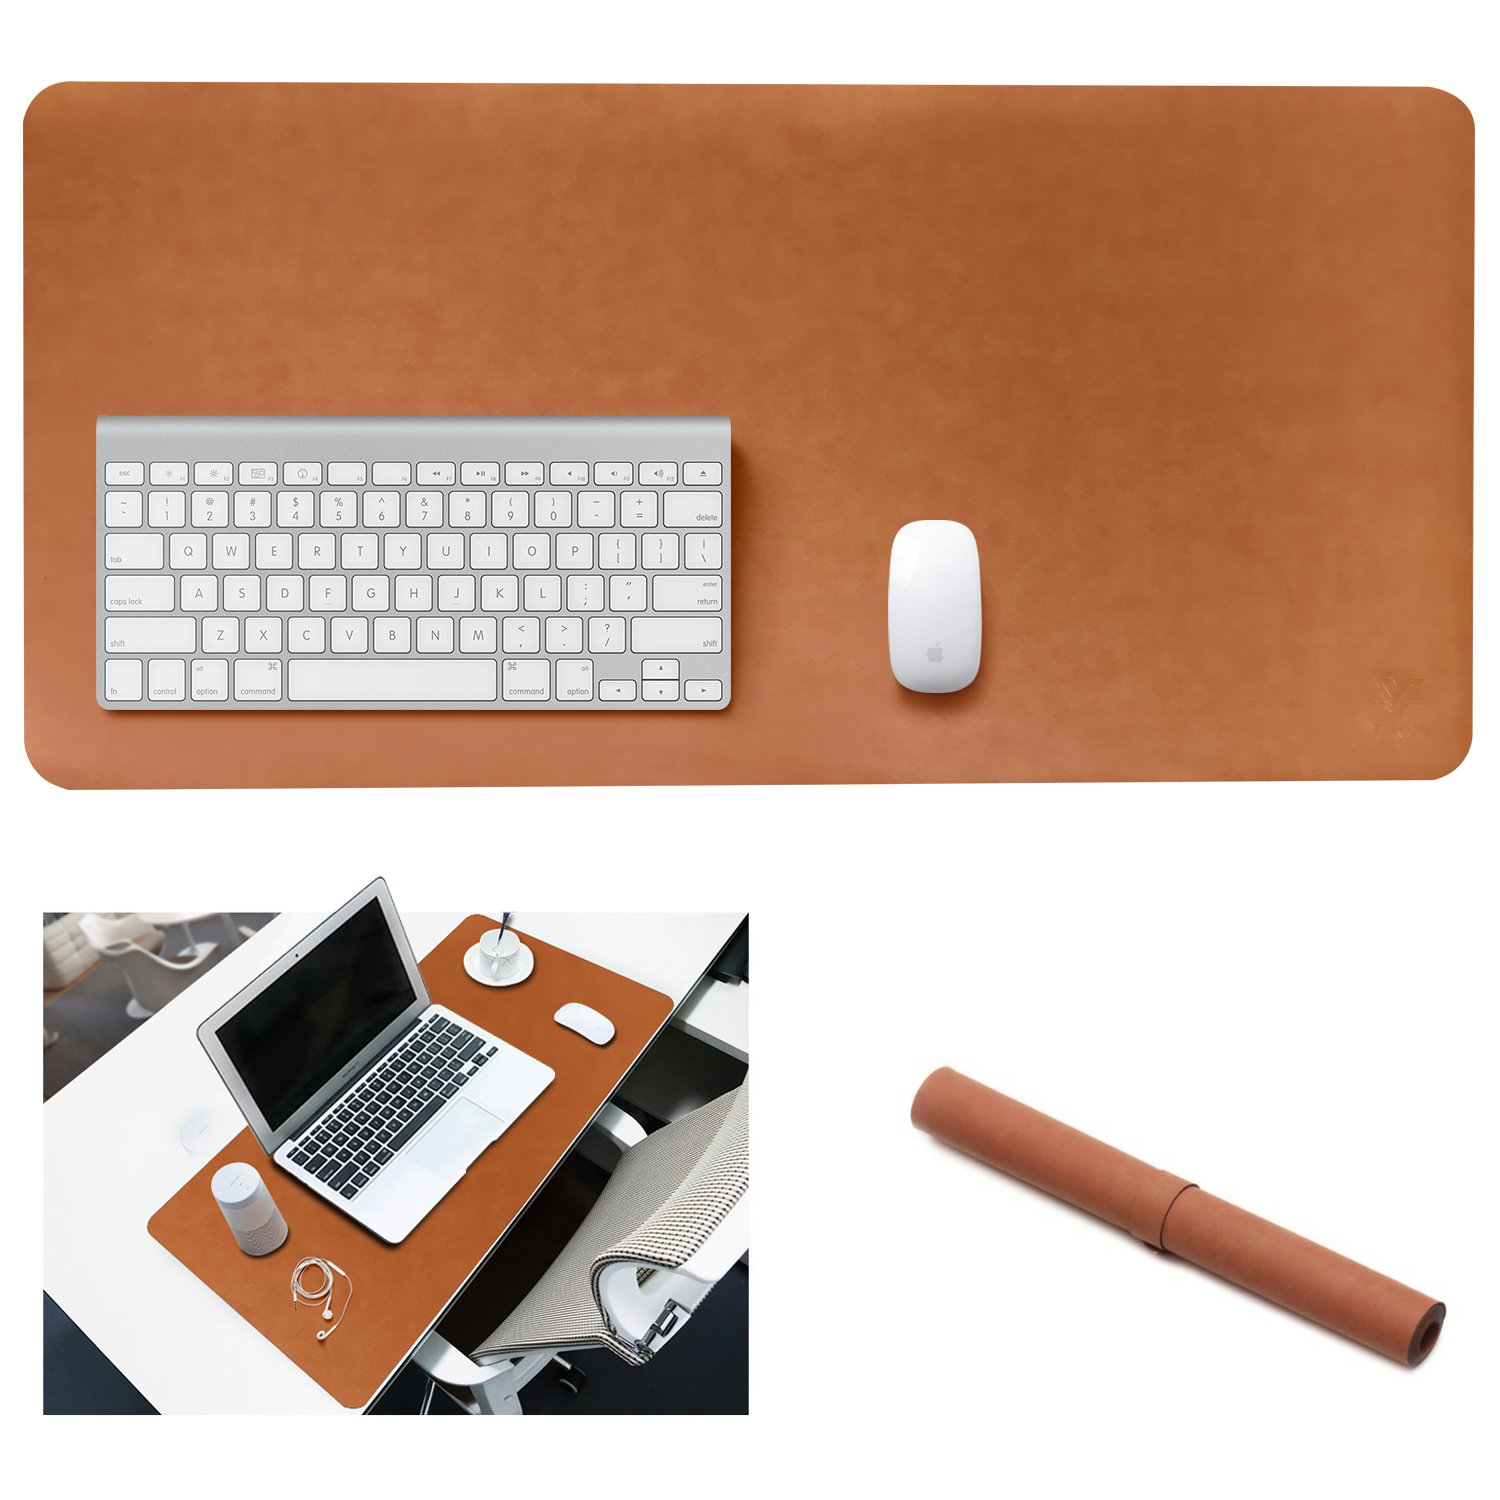 Yikda Extended Leather Mouse Pad/Mat, Large Office Writing Gaming Desk Computer Leather Mat Mousepad,Waterproof,Ultra Thin 1.2mm - 31x15.5 4328338700